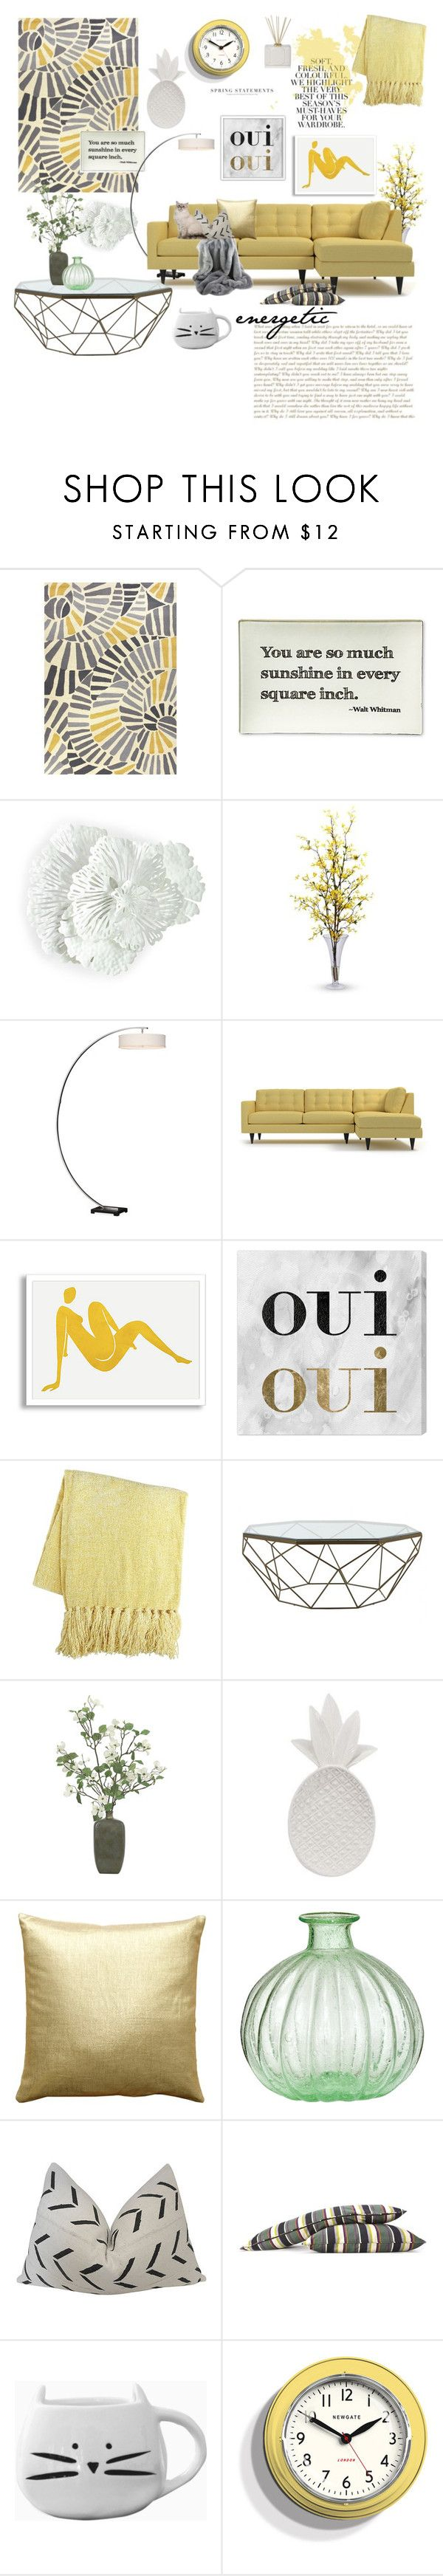 """Lemon burst"" by iwona-estera on Polyvore featuring interior, interiors, interior design, home, home decor, interior decorating, Jaipur Rugs, Twigs and Moss, Nearly Natural and Uttermost"